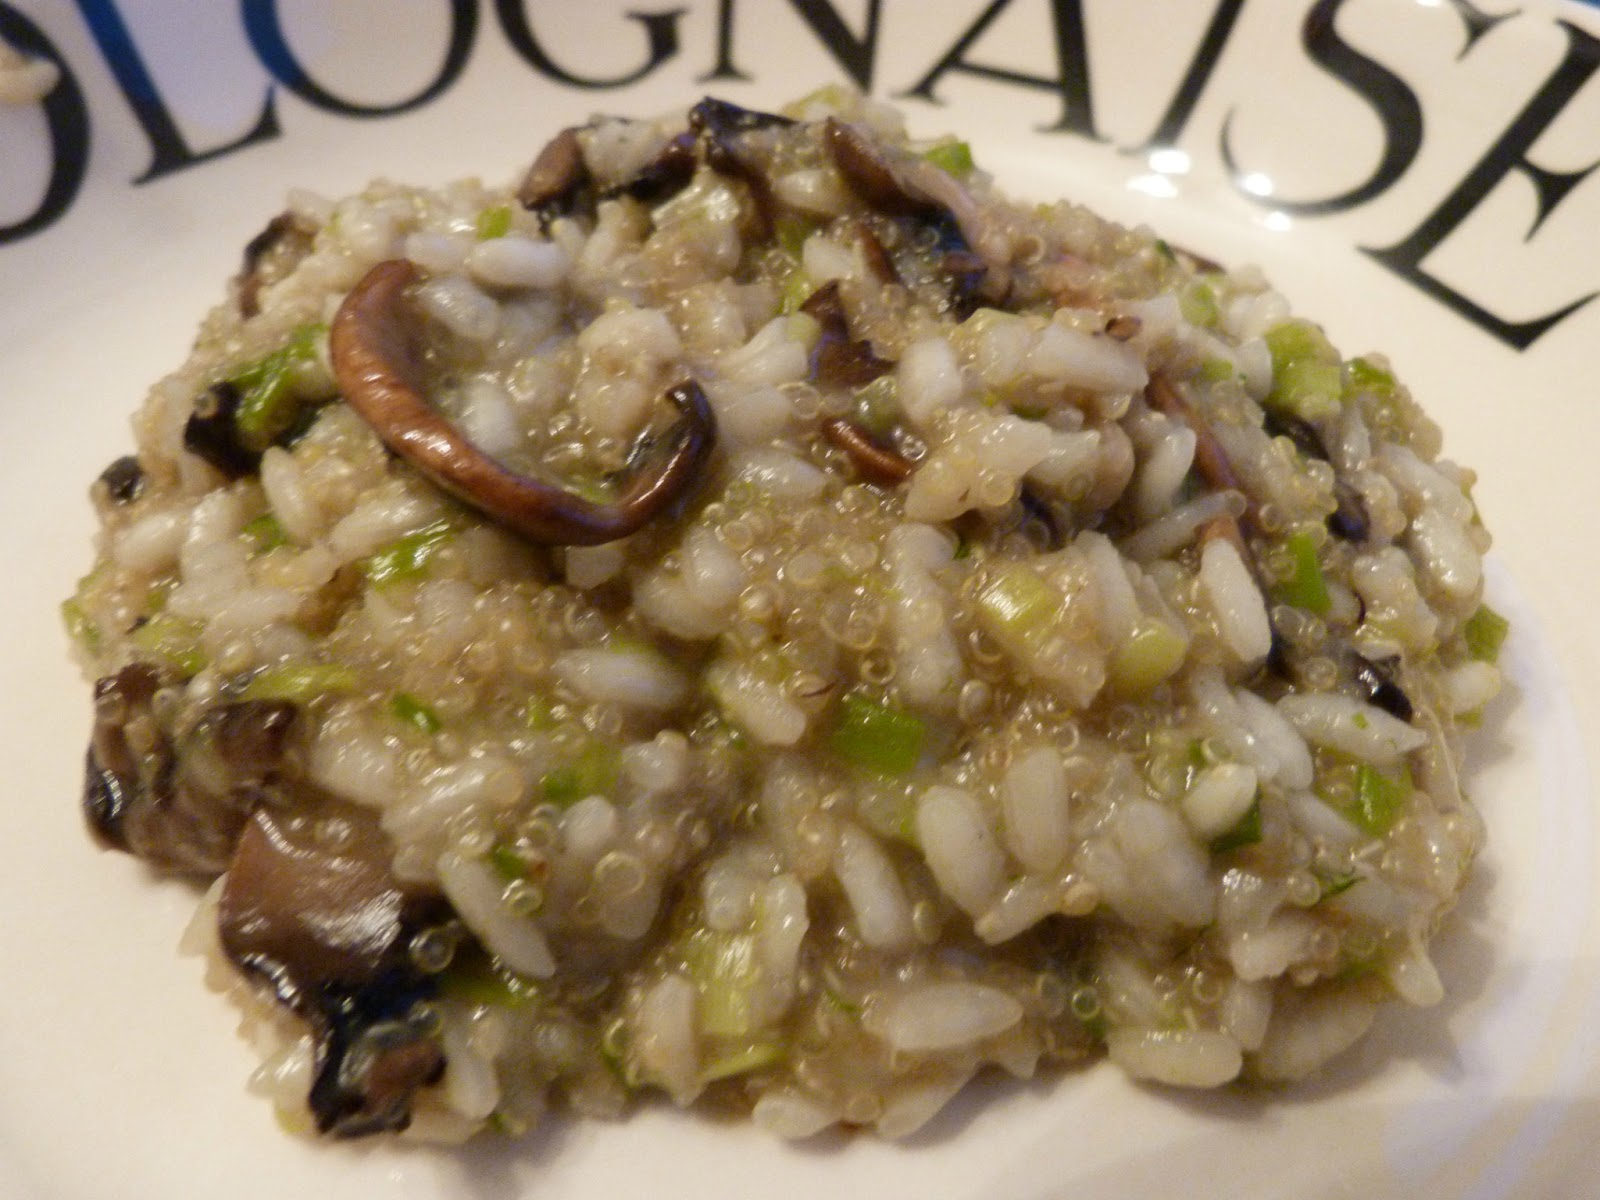 Healthy Mushroom Risotto - The Runner Beans